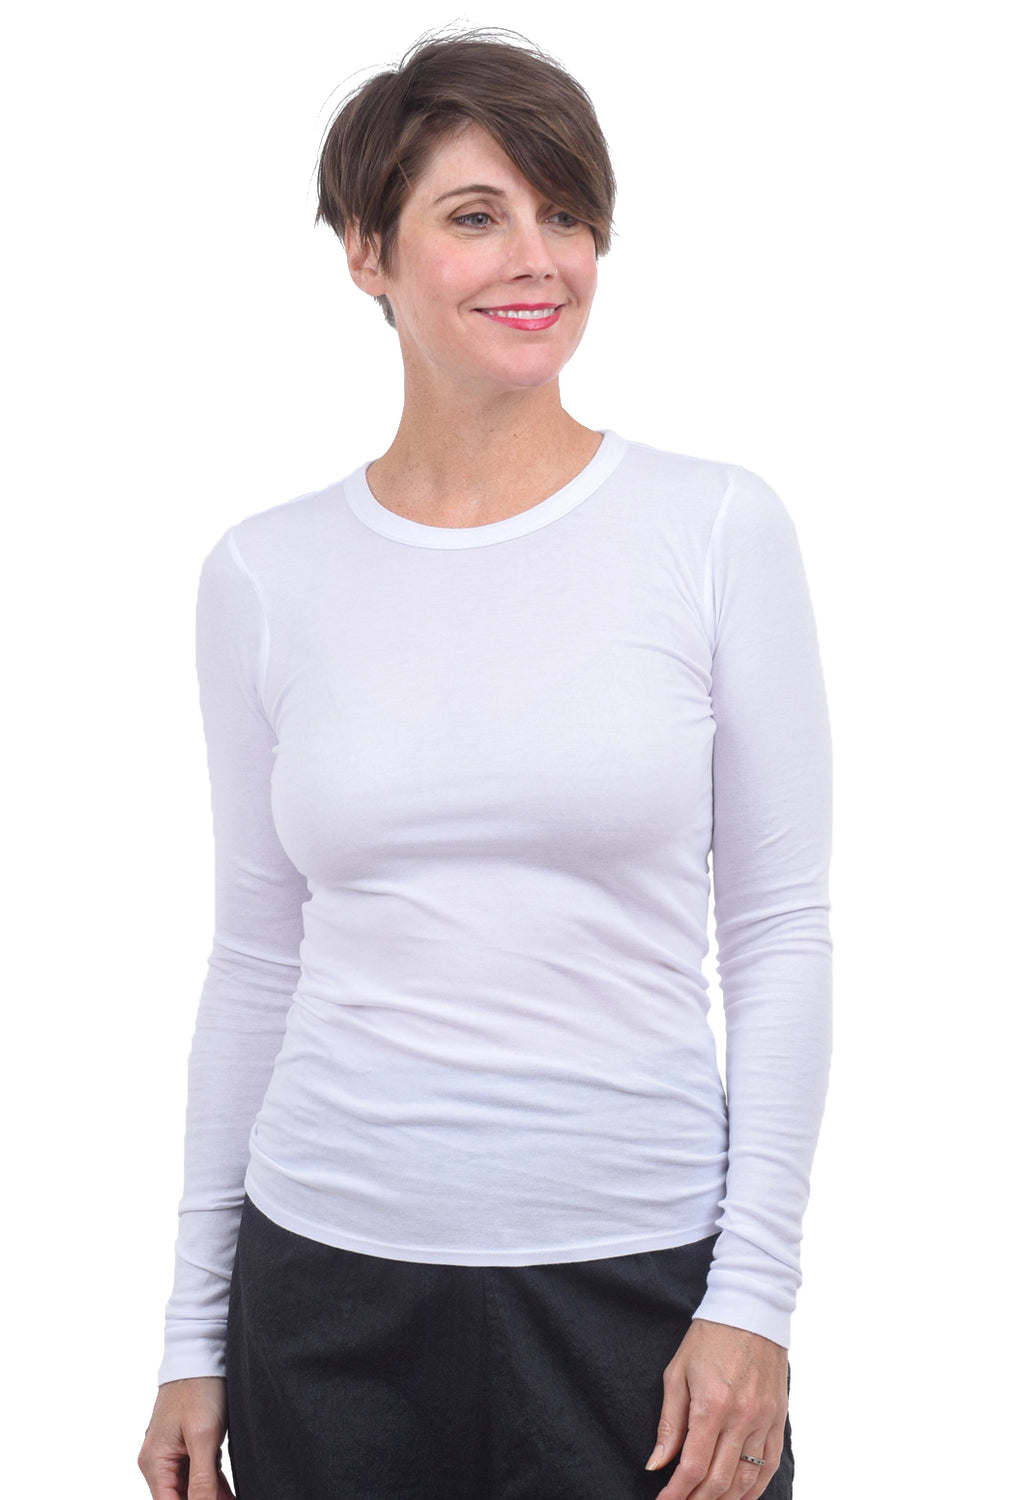 Enza Costa Supima Cotton T-Shirt, White